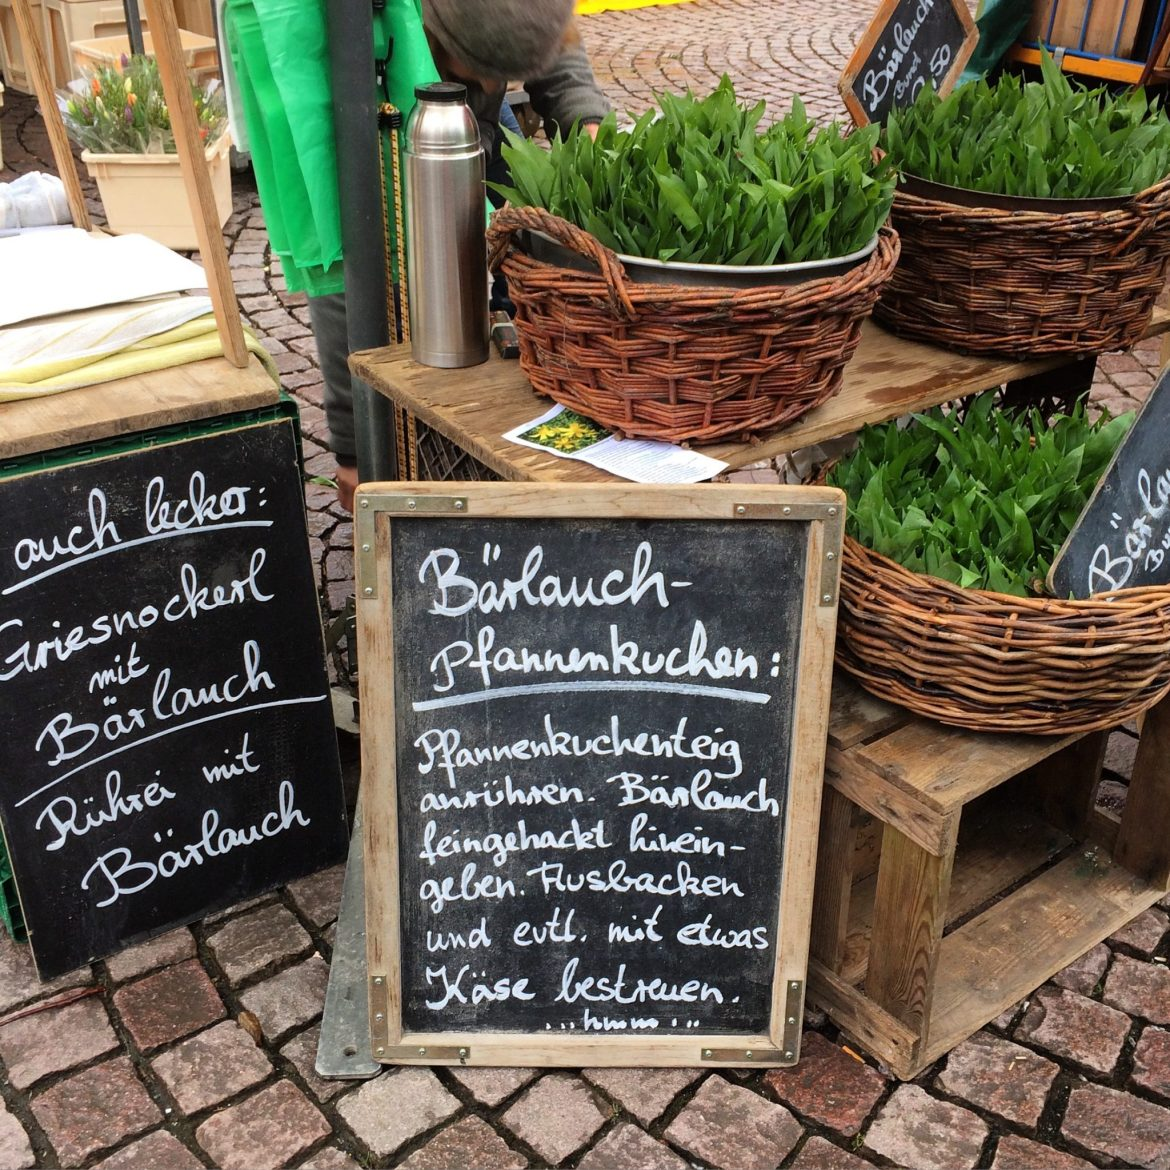 Wild garlic stand at farmers' market with chalk board